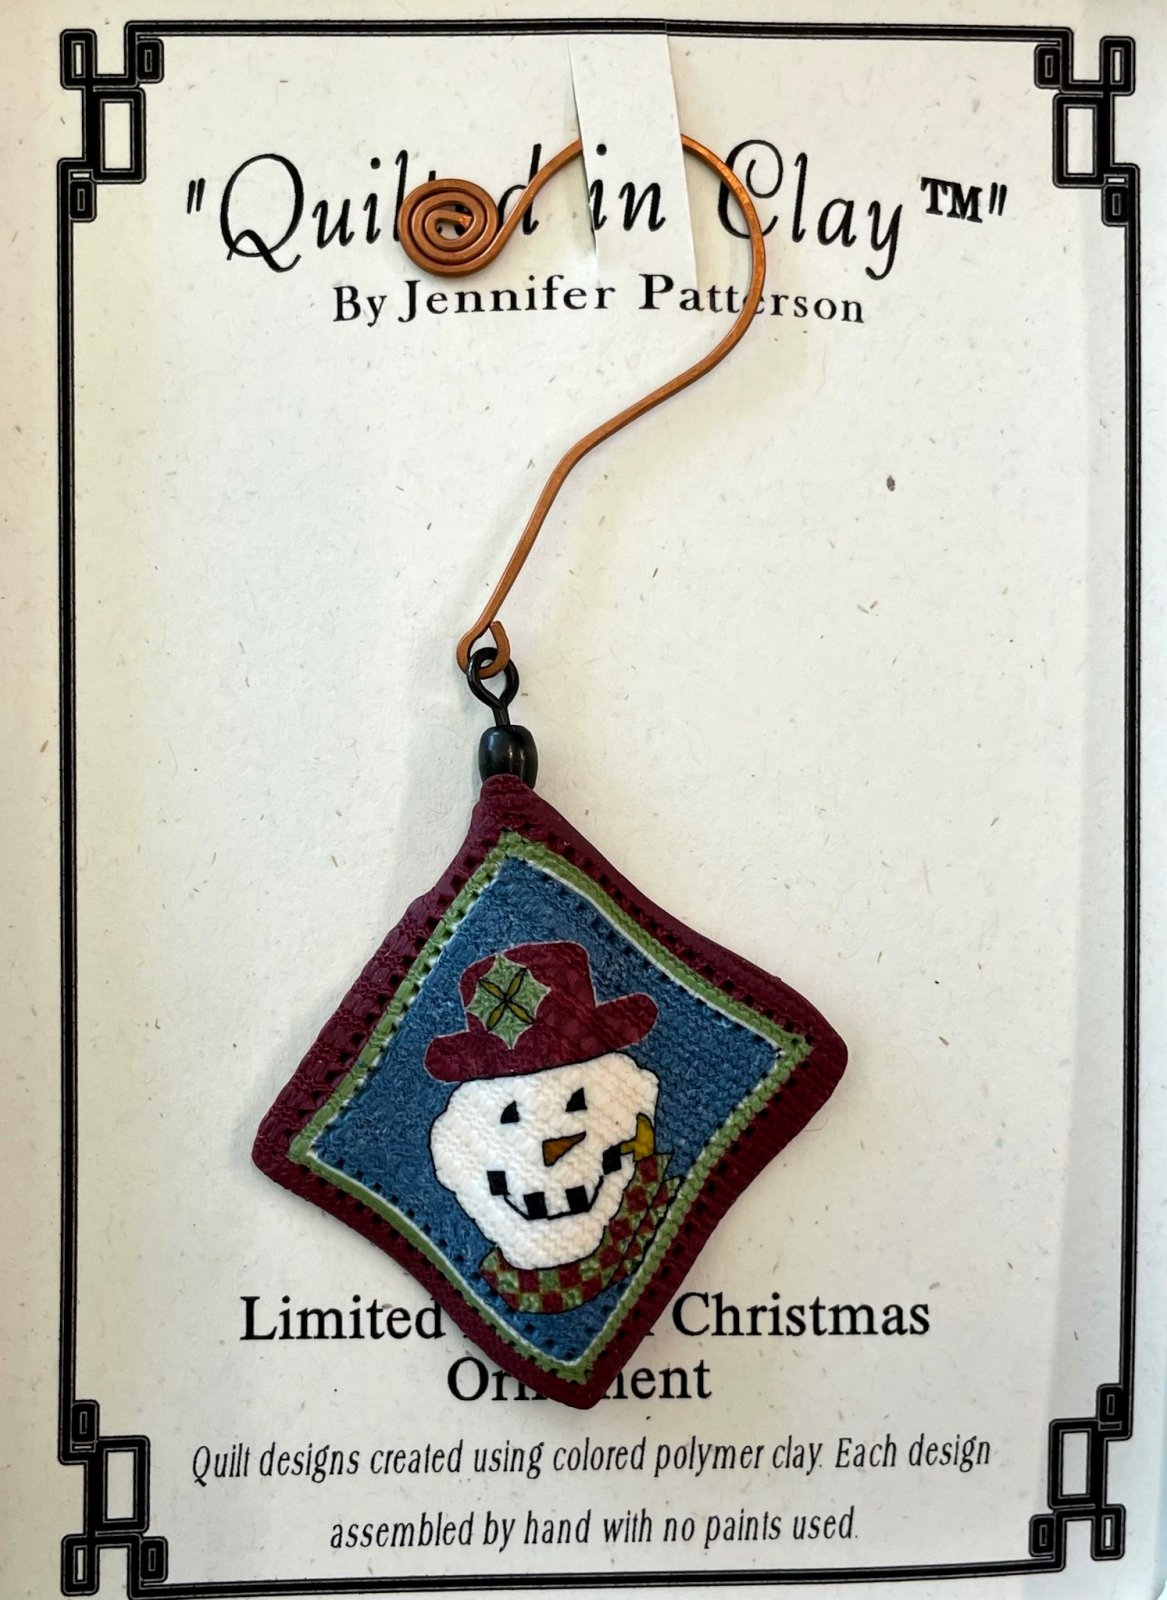 QICORNAMENT Quilted in Clay Snowman Ornament